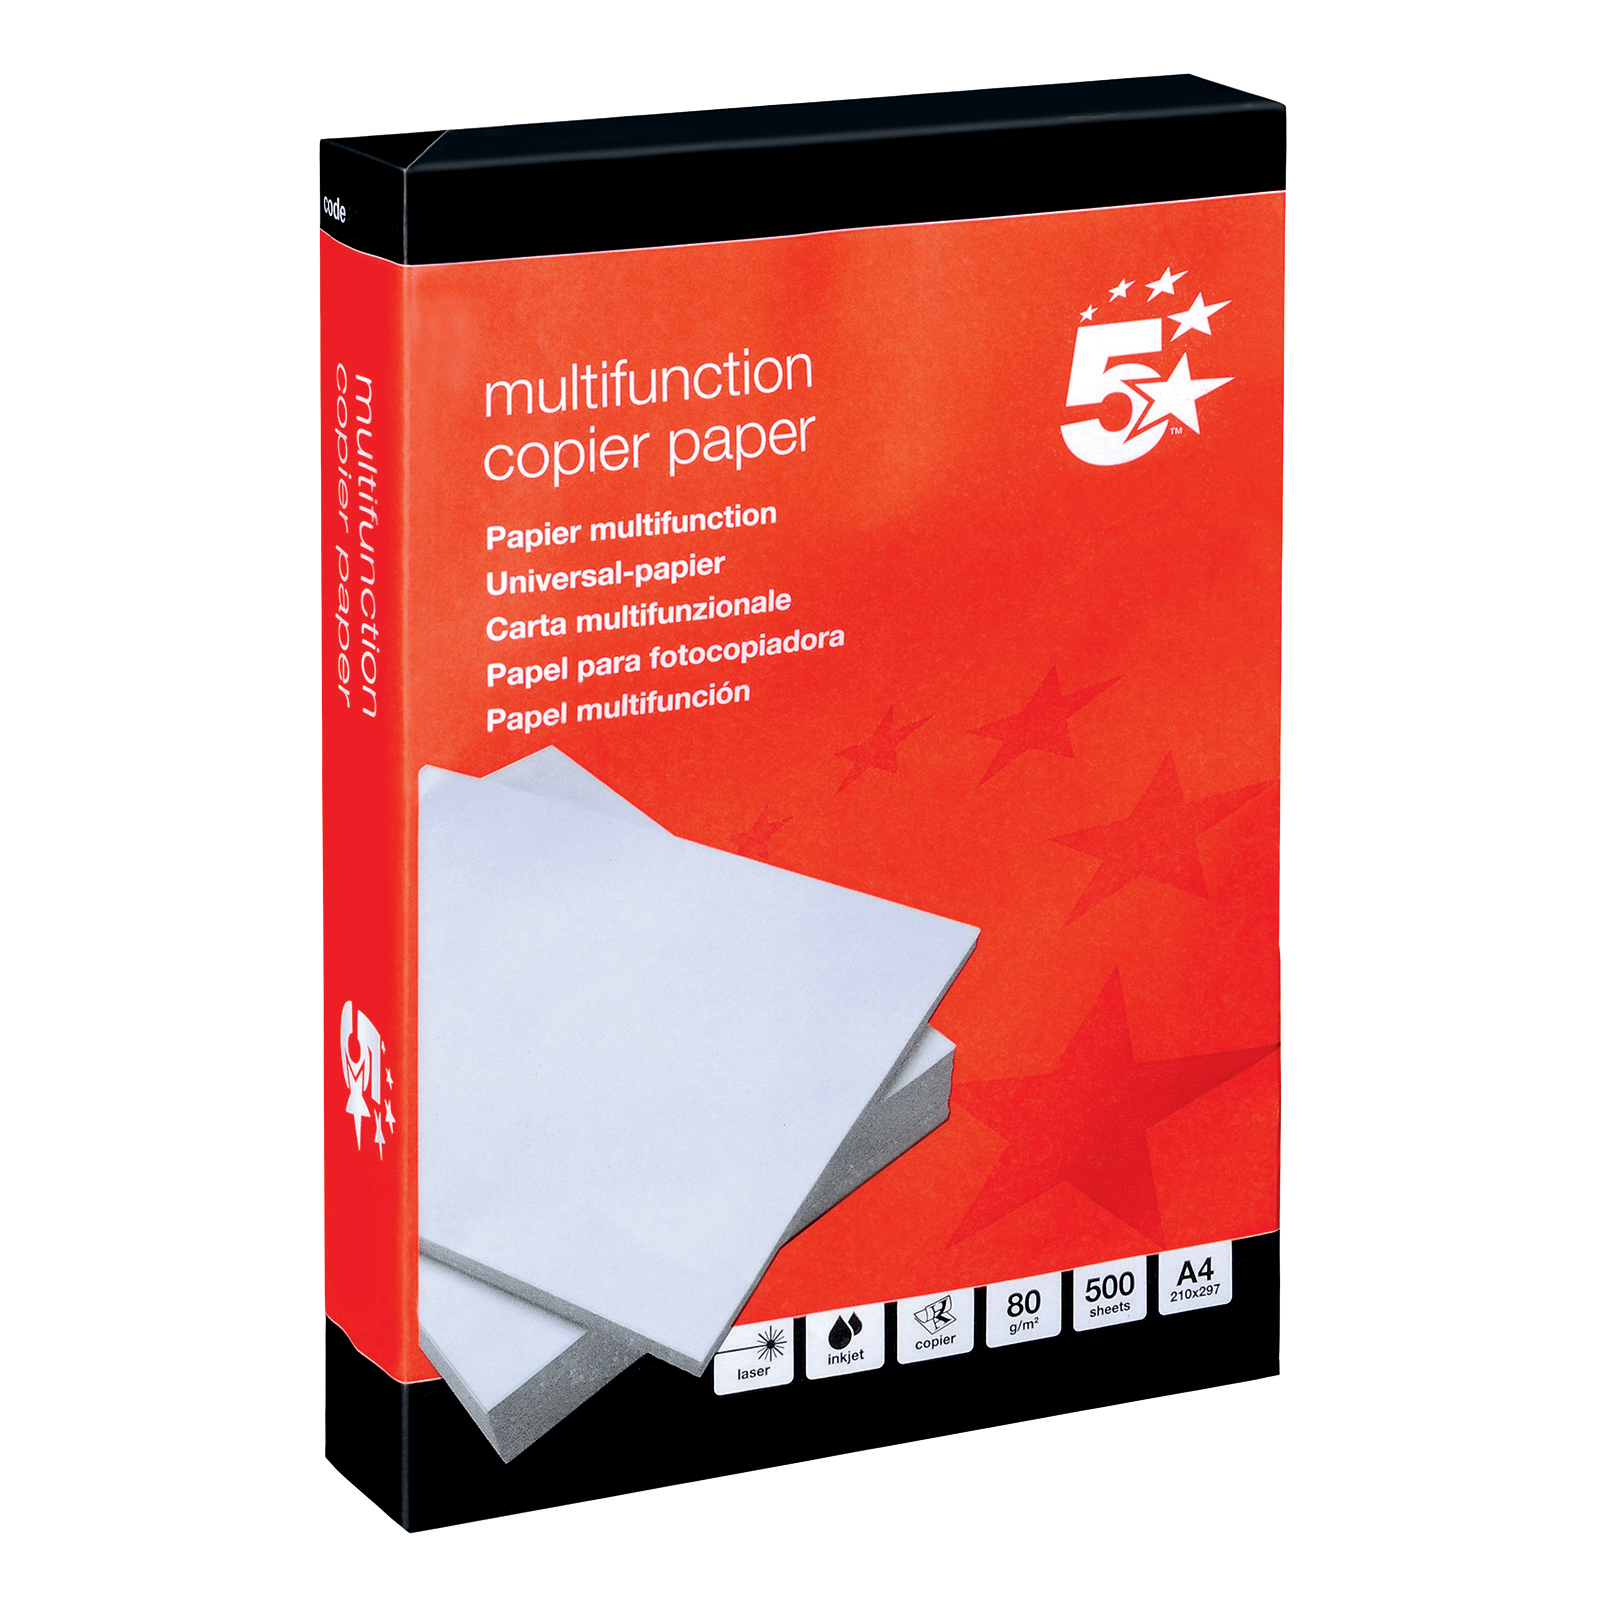 A4 5 Star Office Copier Paper Multifunctional Ream-Wrapped 80gsm A4 White 5 x 500 Sheets